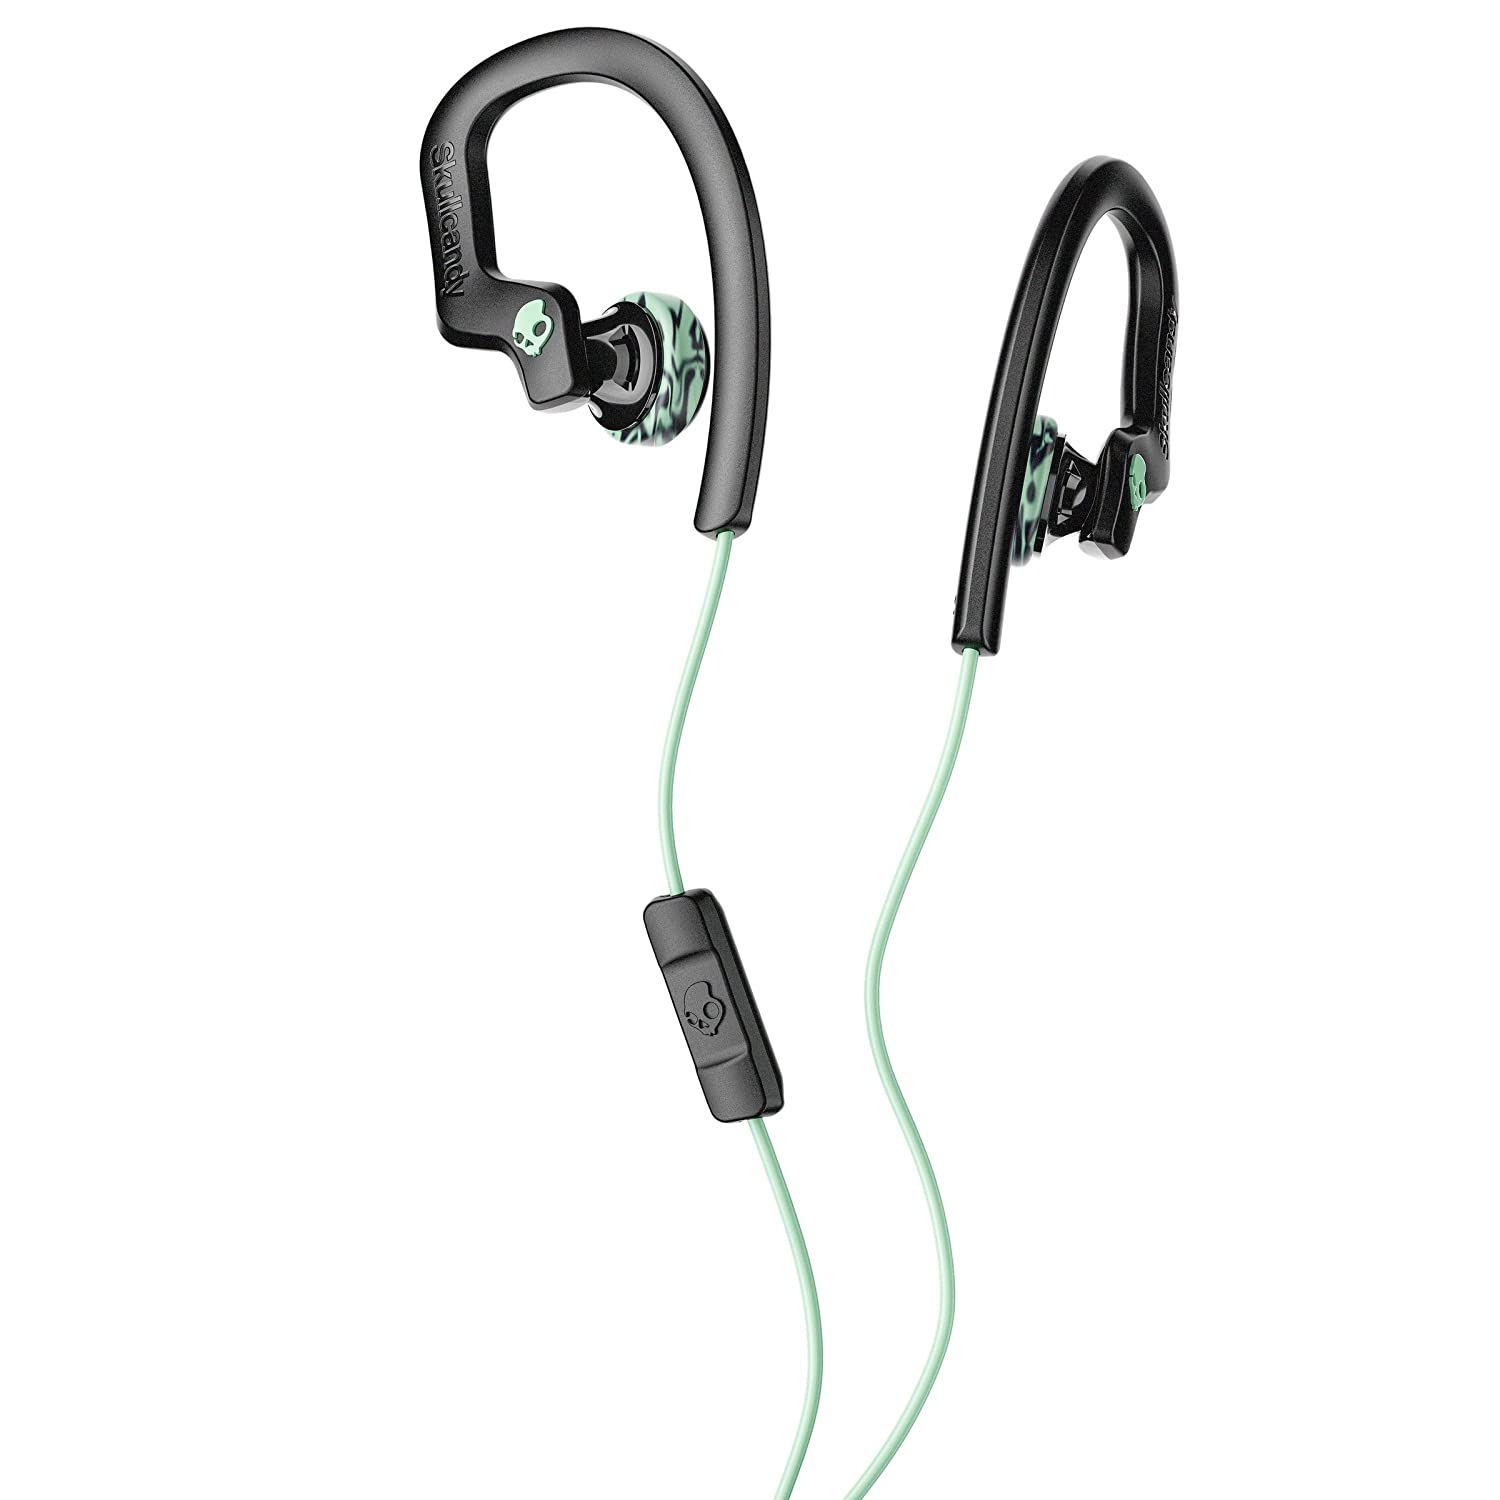 Skullcandy Chops Buds Flex Sports Performance Headphones (Black/Mint)